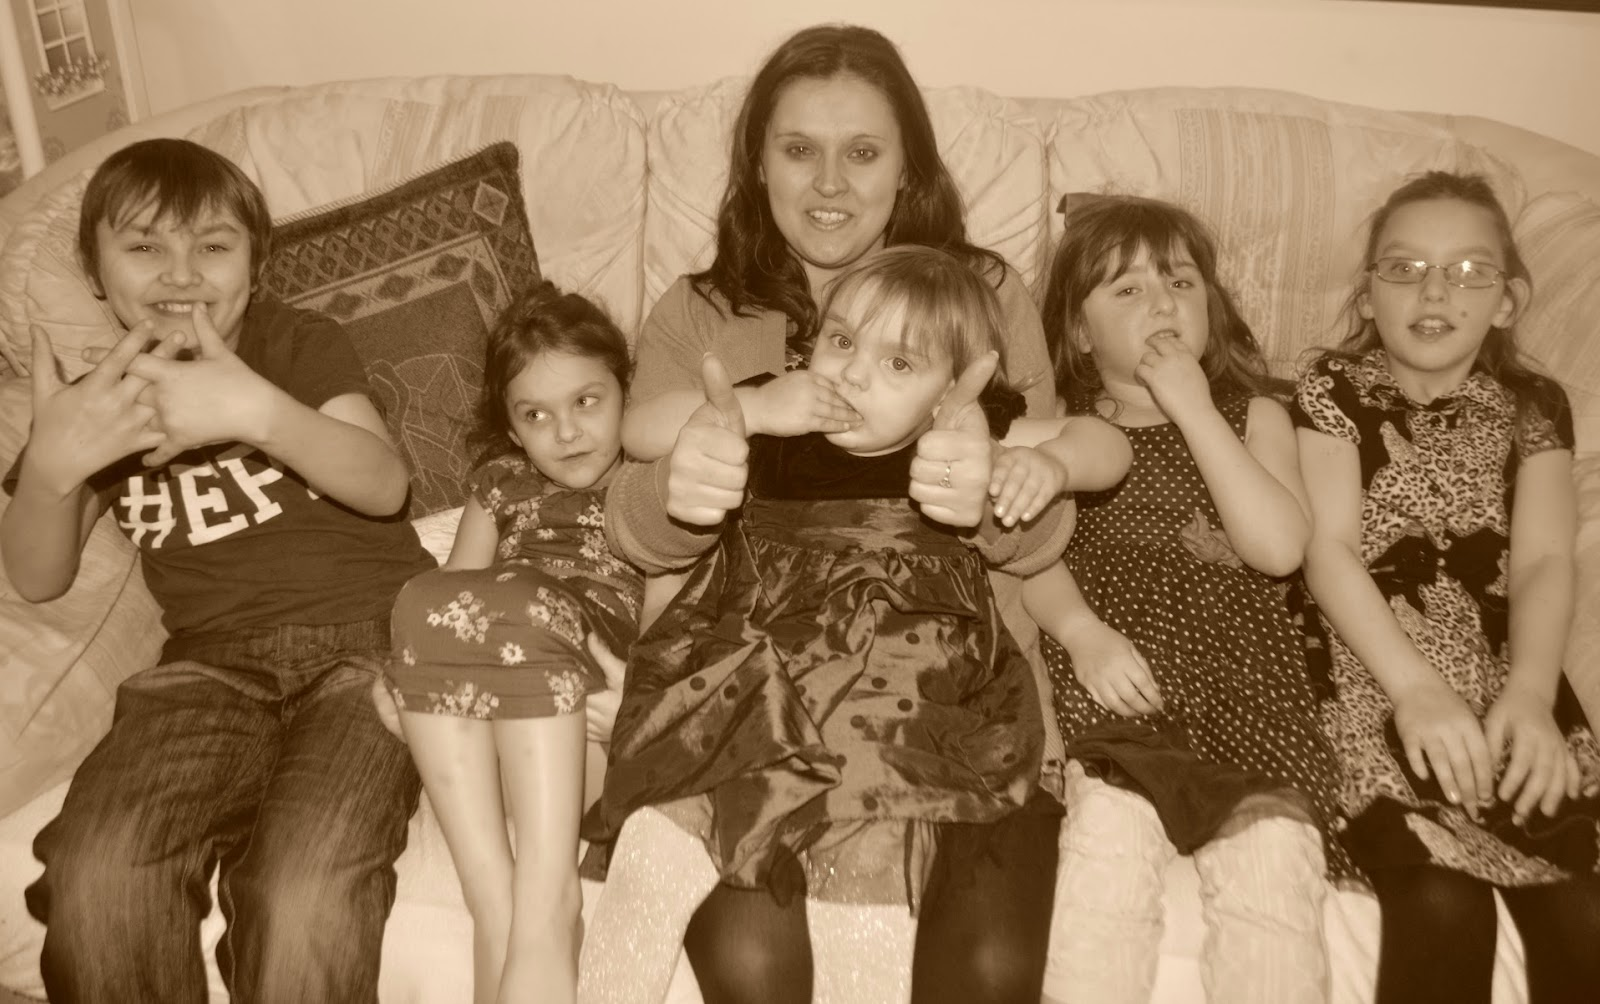 Aunty Siblings Cousin Family Portrait Sepia Photography